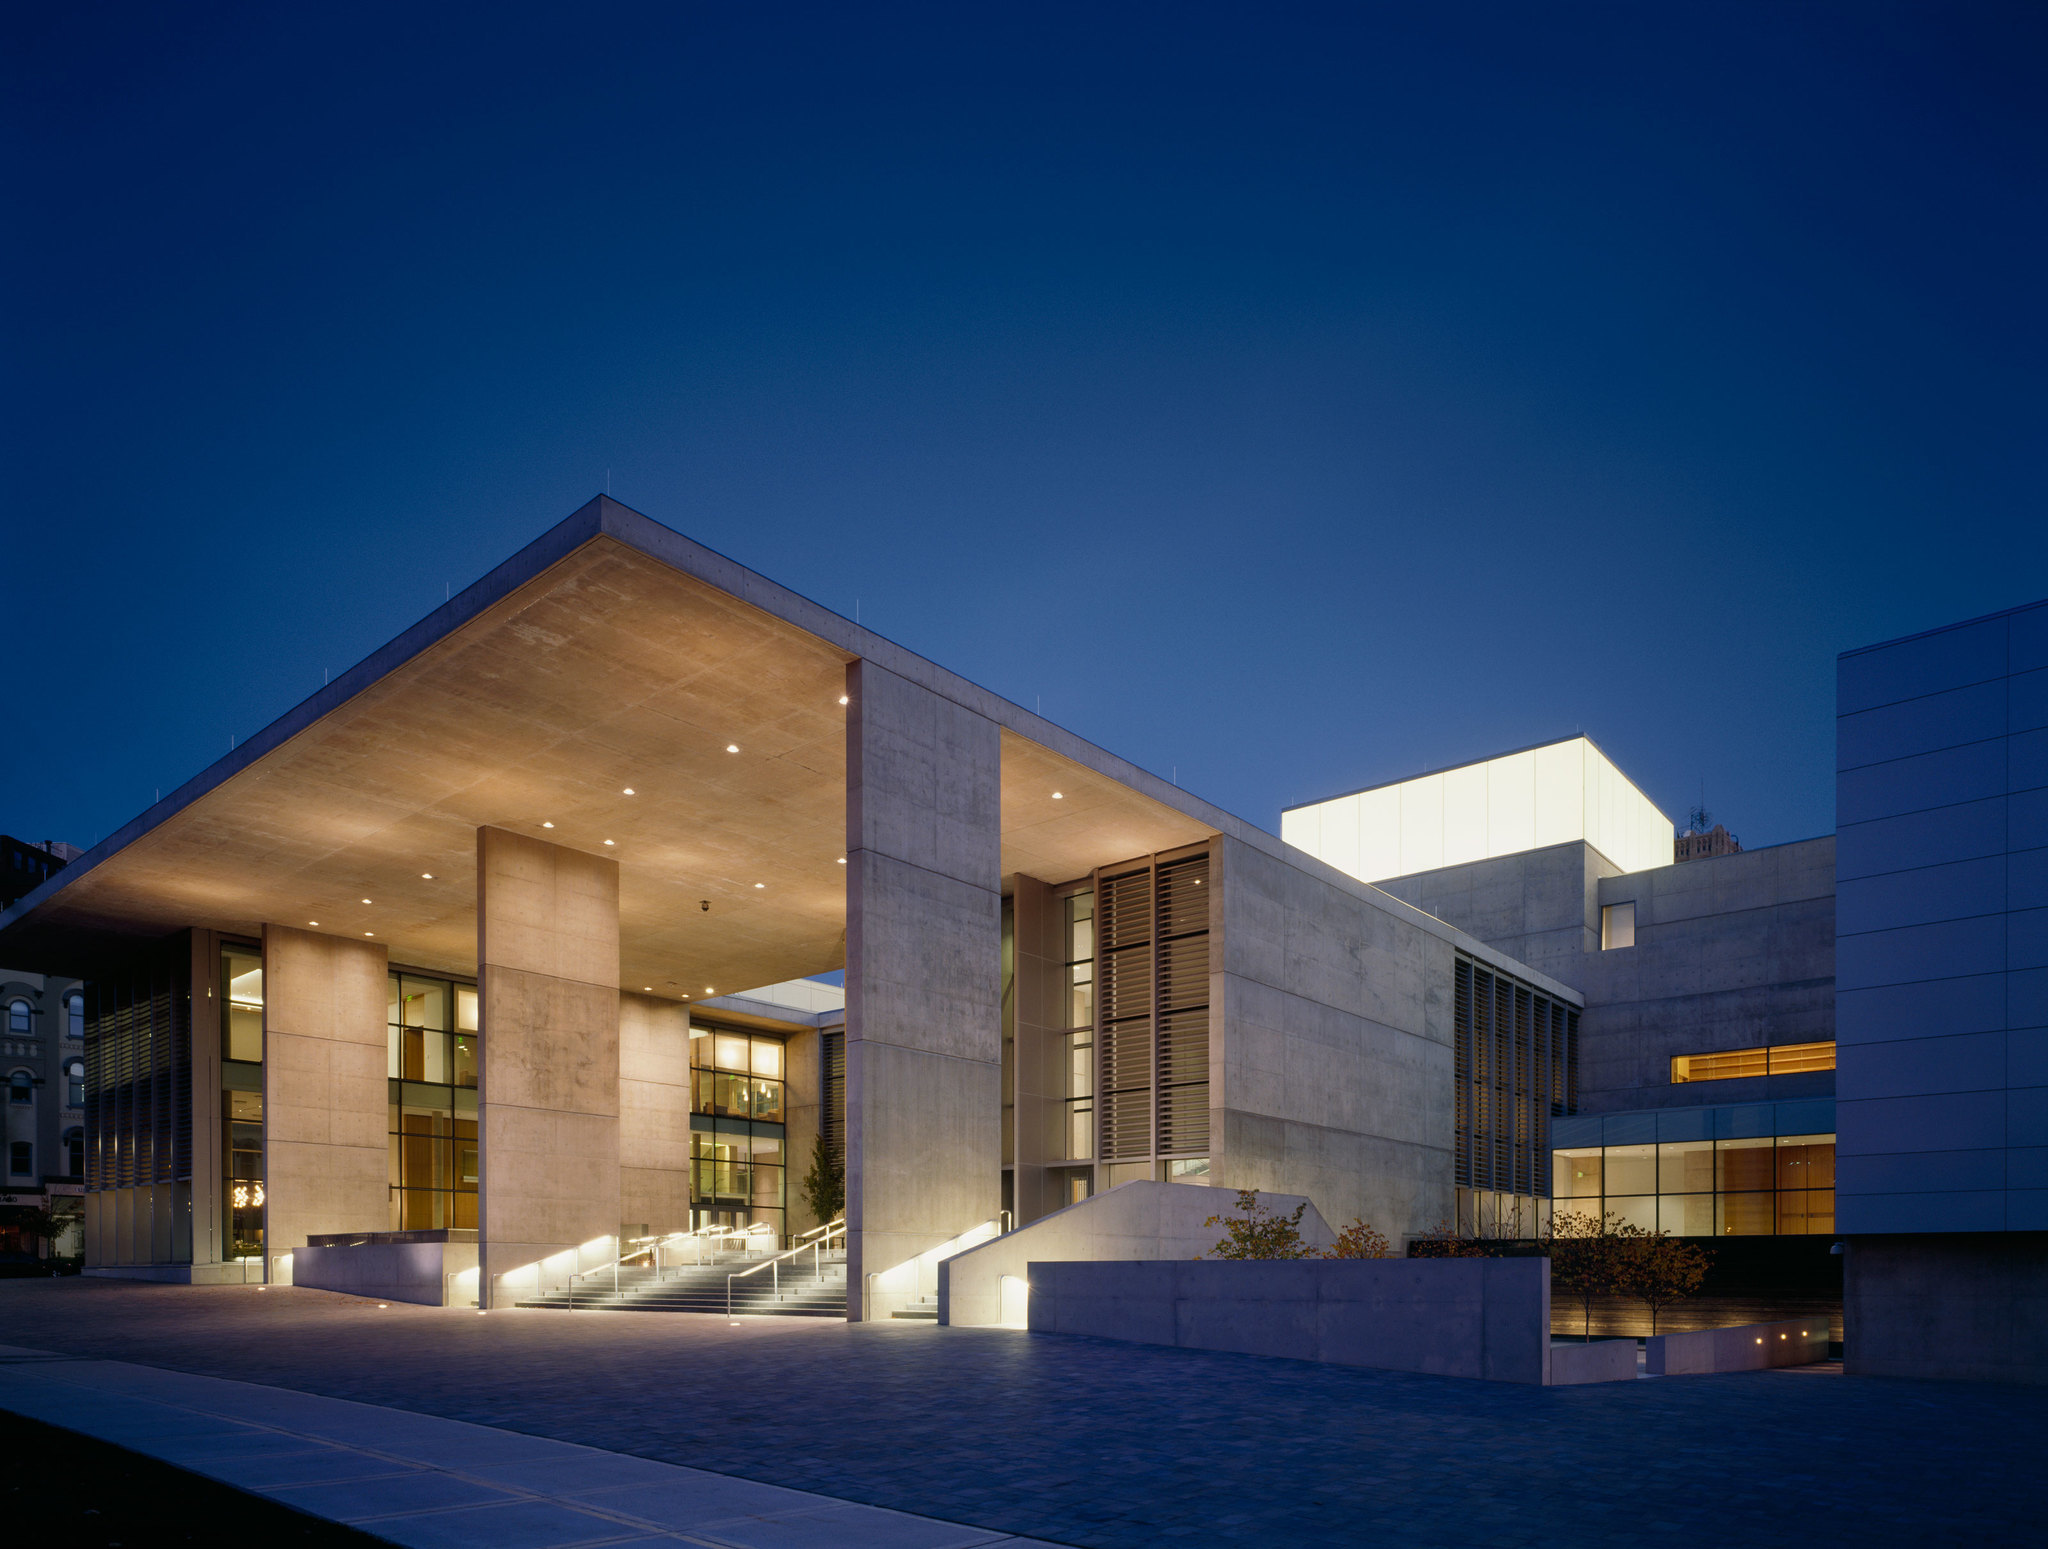 The entrance to the Grand Rapids Art Museum in Michigan, opened in 2007.